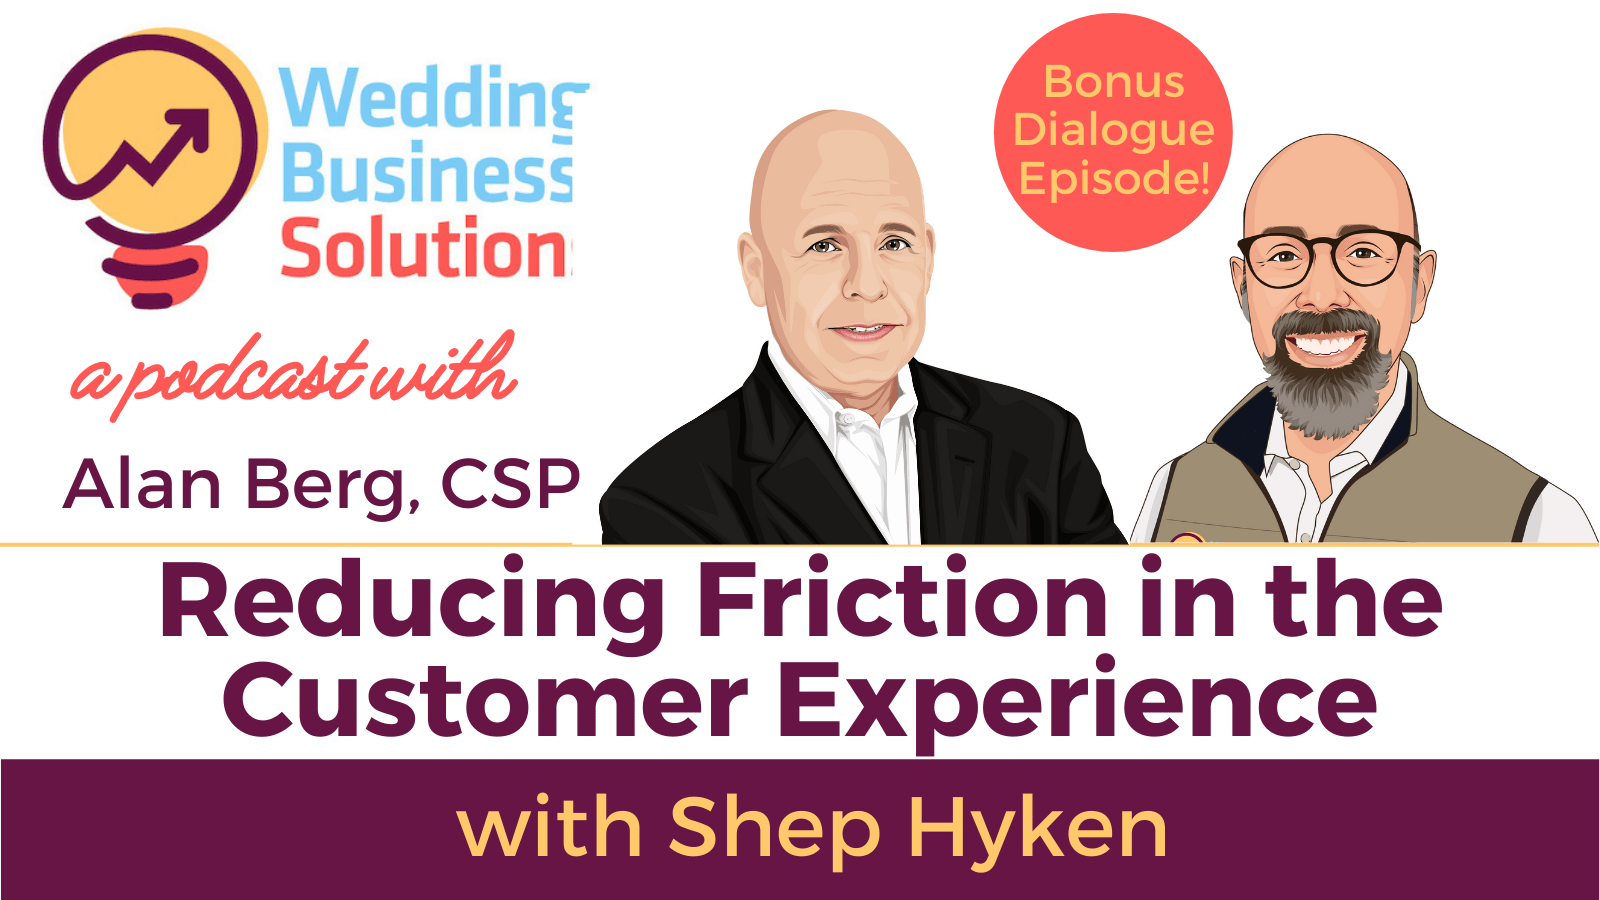 Wedding Business Solutions Podcast With Alan Berg CSP - Shep Hyken on Customer Service